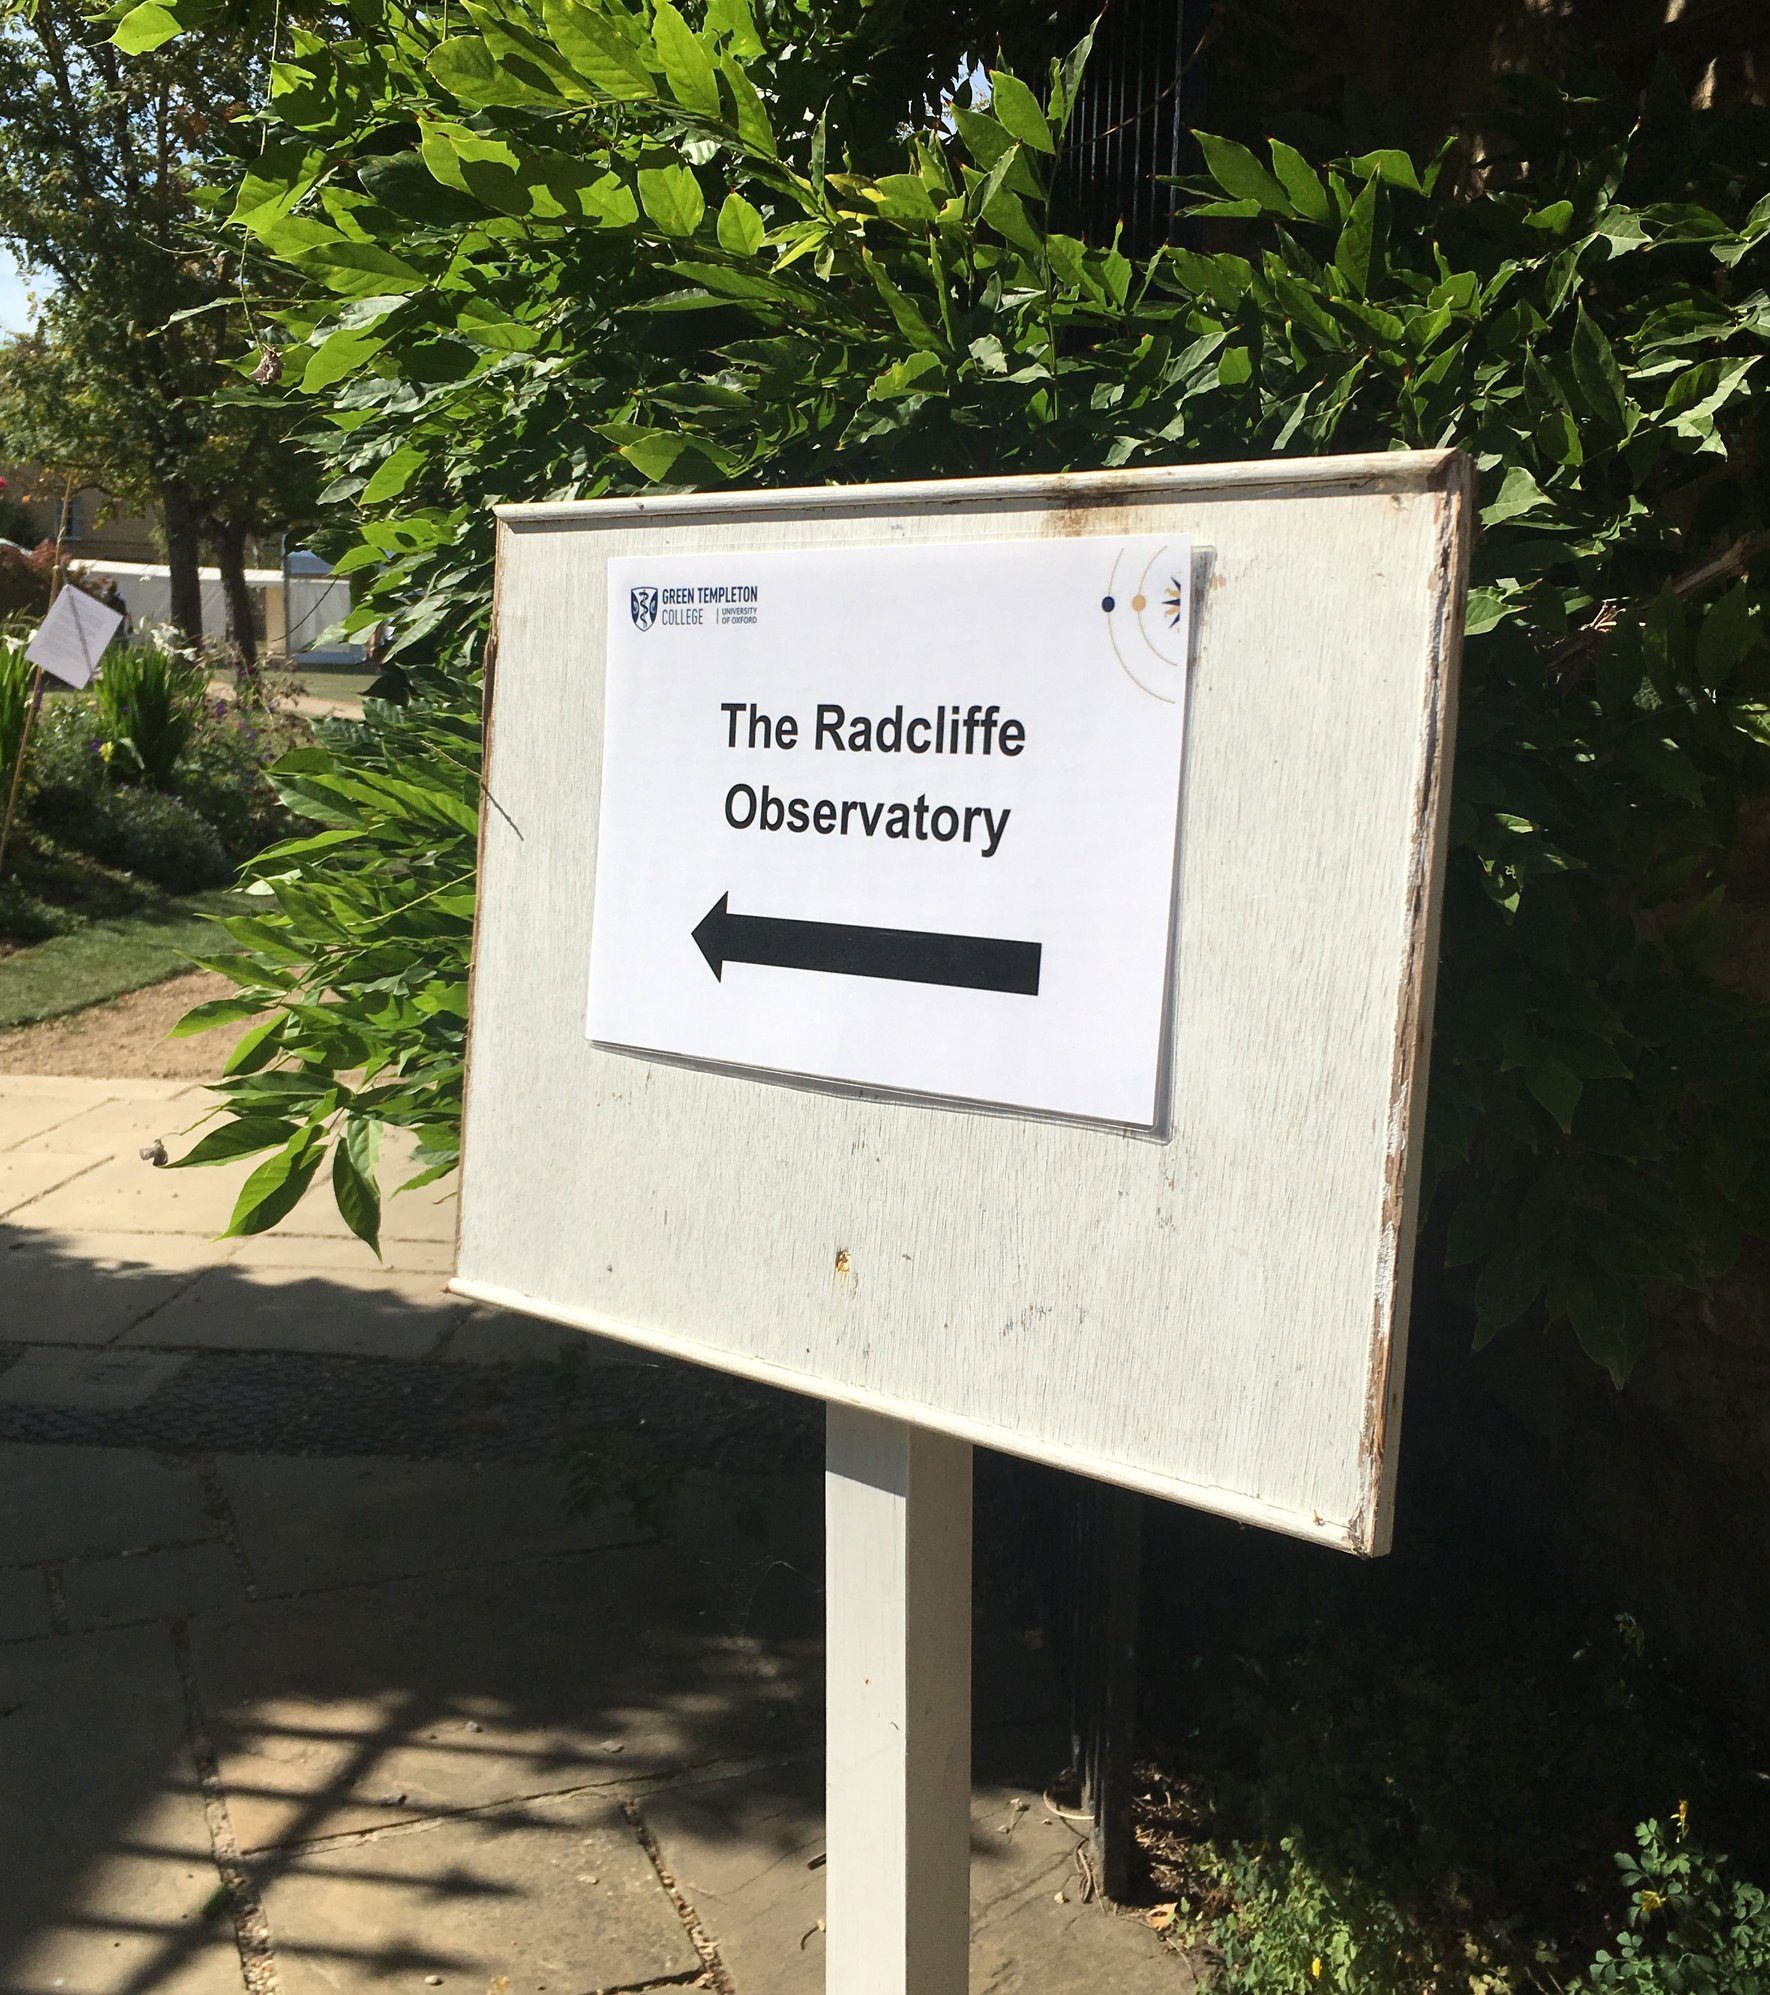 A sign to the Radcliffe Observatory at Green Templeton College during Open Doors 2019